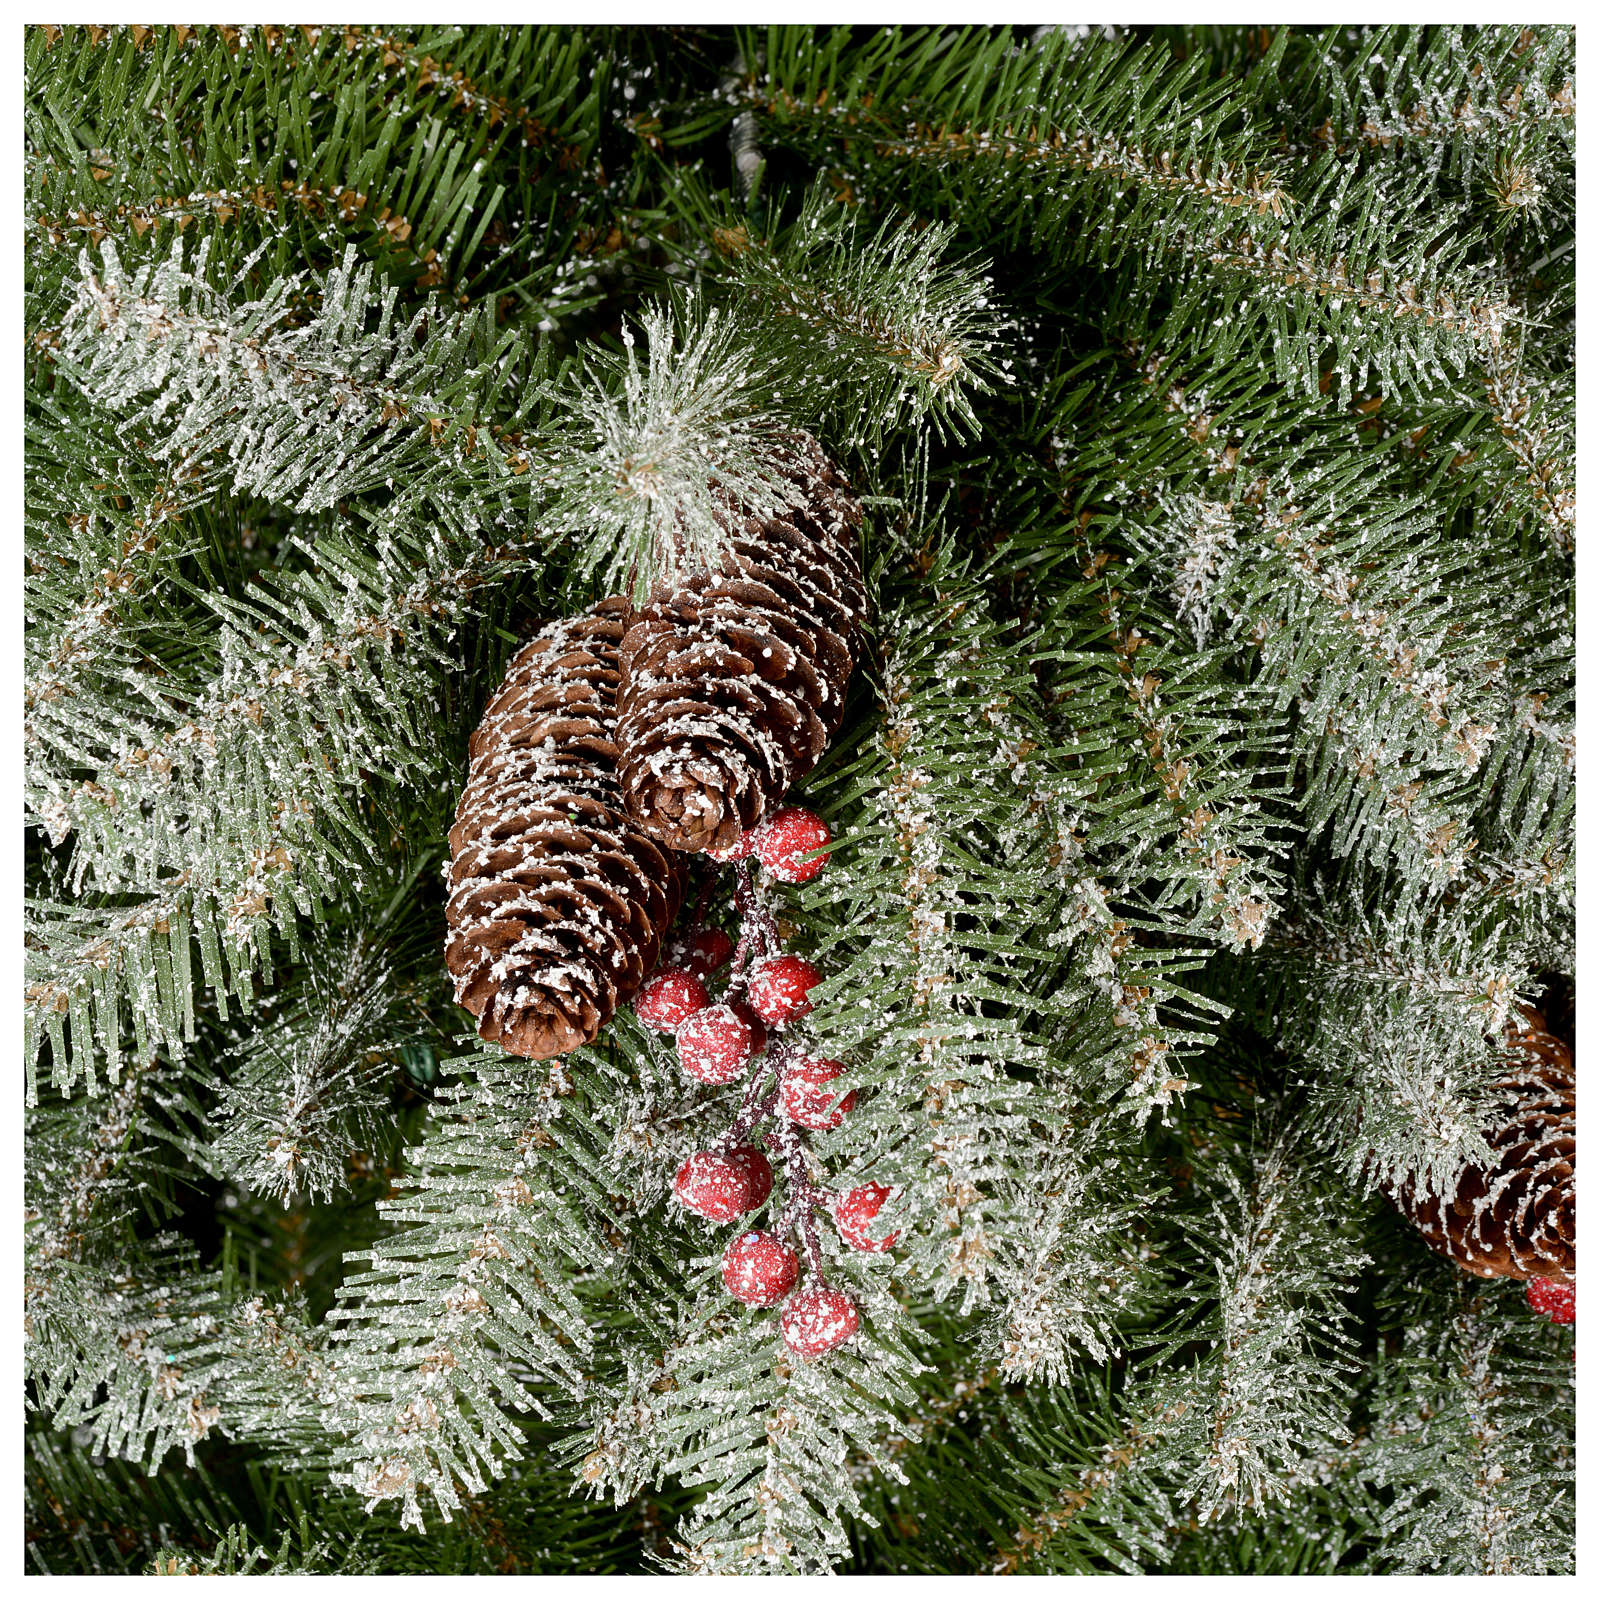 Christmas Tree With Pine Cones And Berries: Christmas Tree 180 Cm, Flocked Dunhil With Pine Cones And